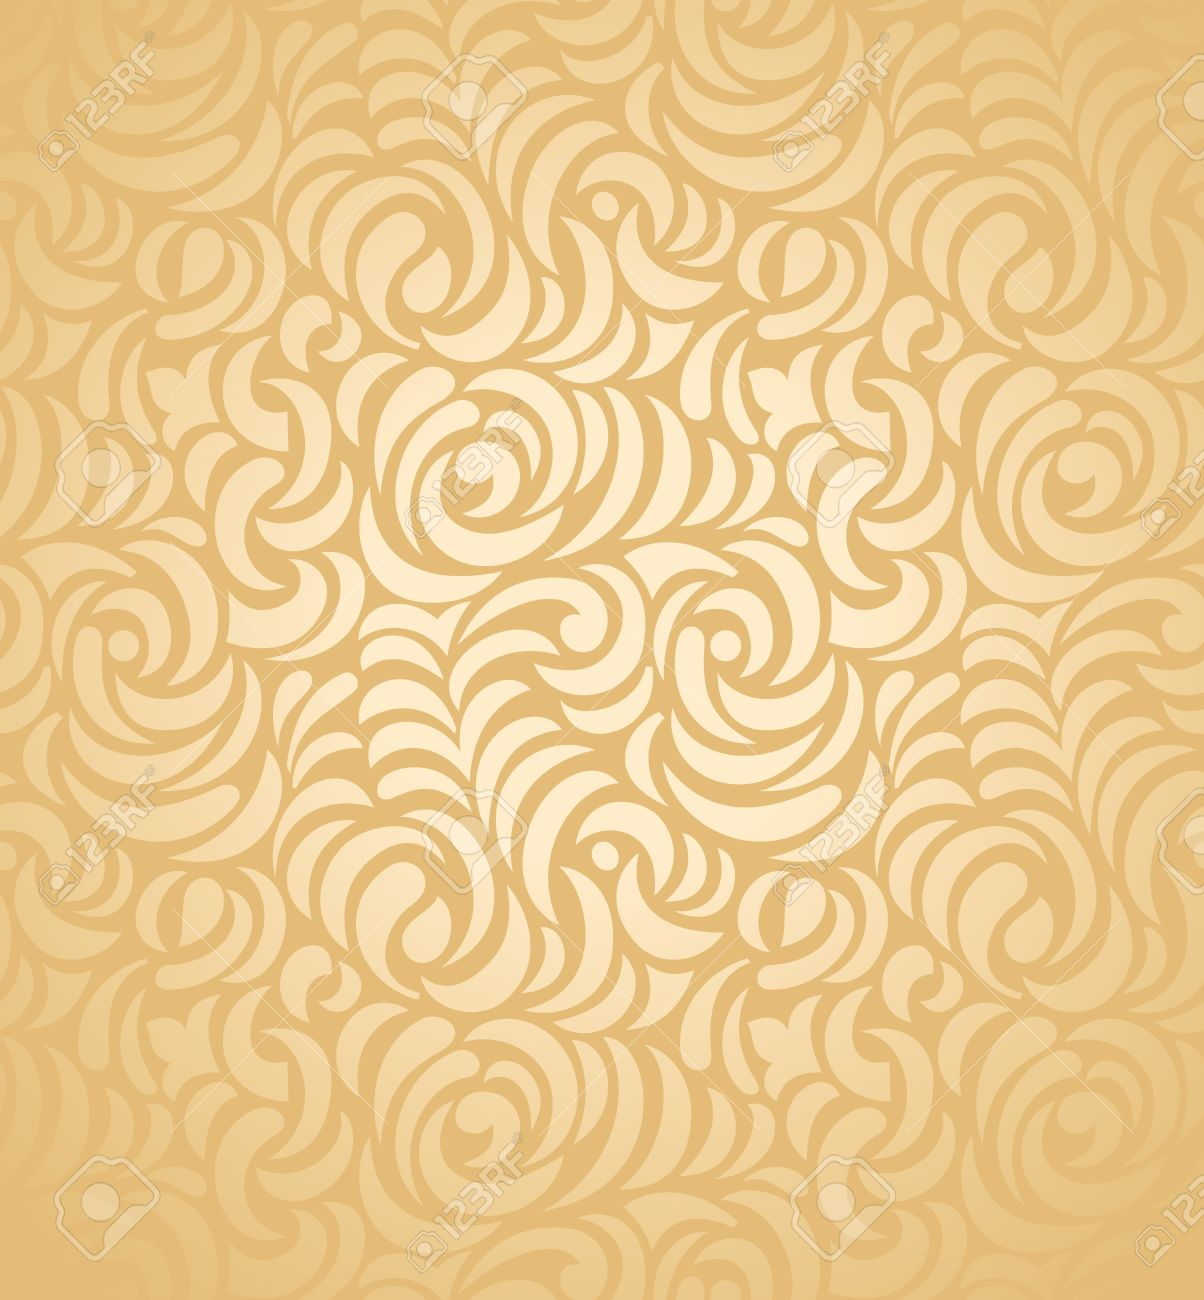 Seamless Golden Wedding Card Background Royalty Free Cliparts